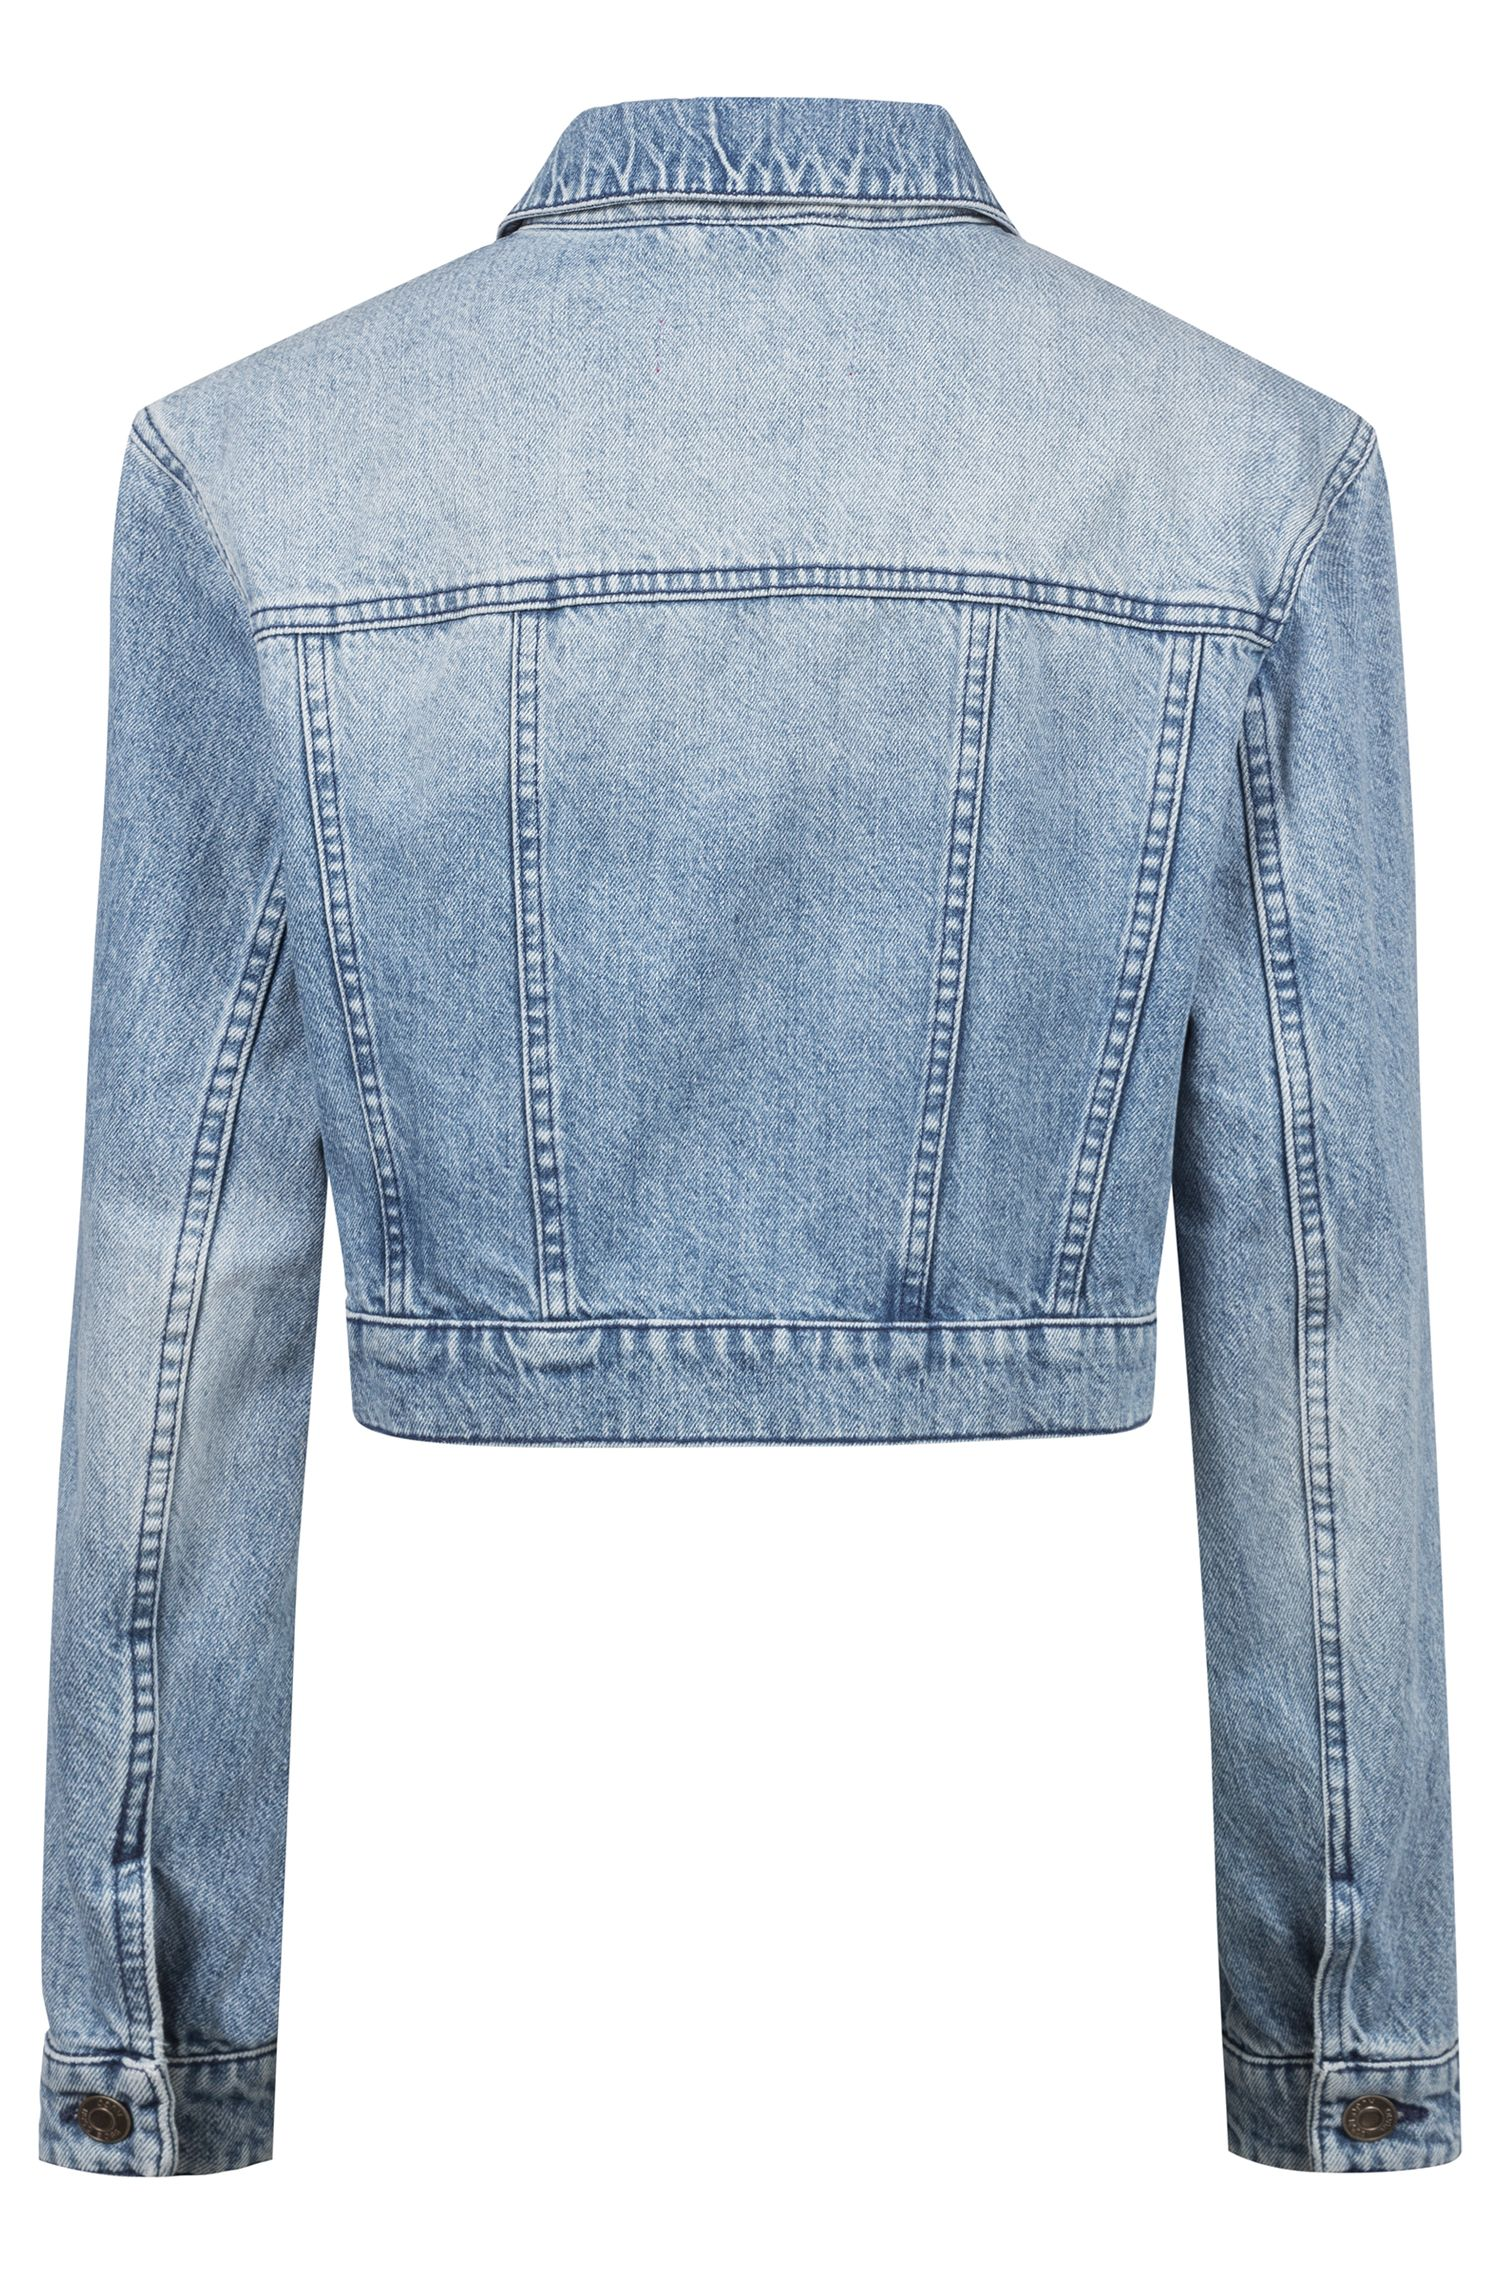 Cropped jacket in stonewashed denim, Blue